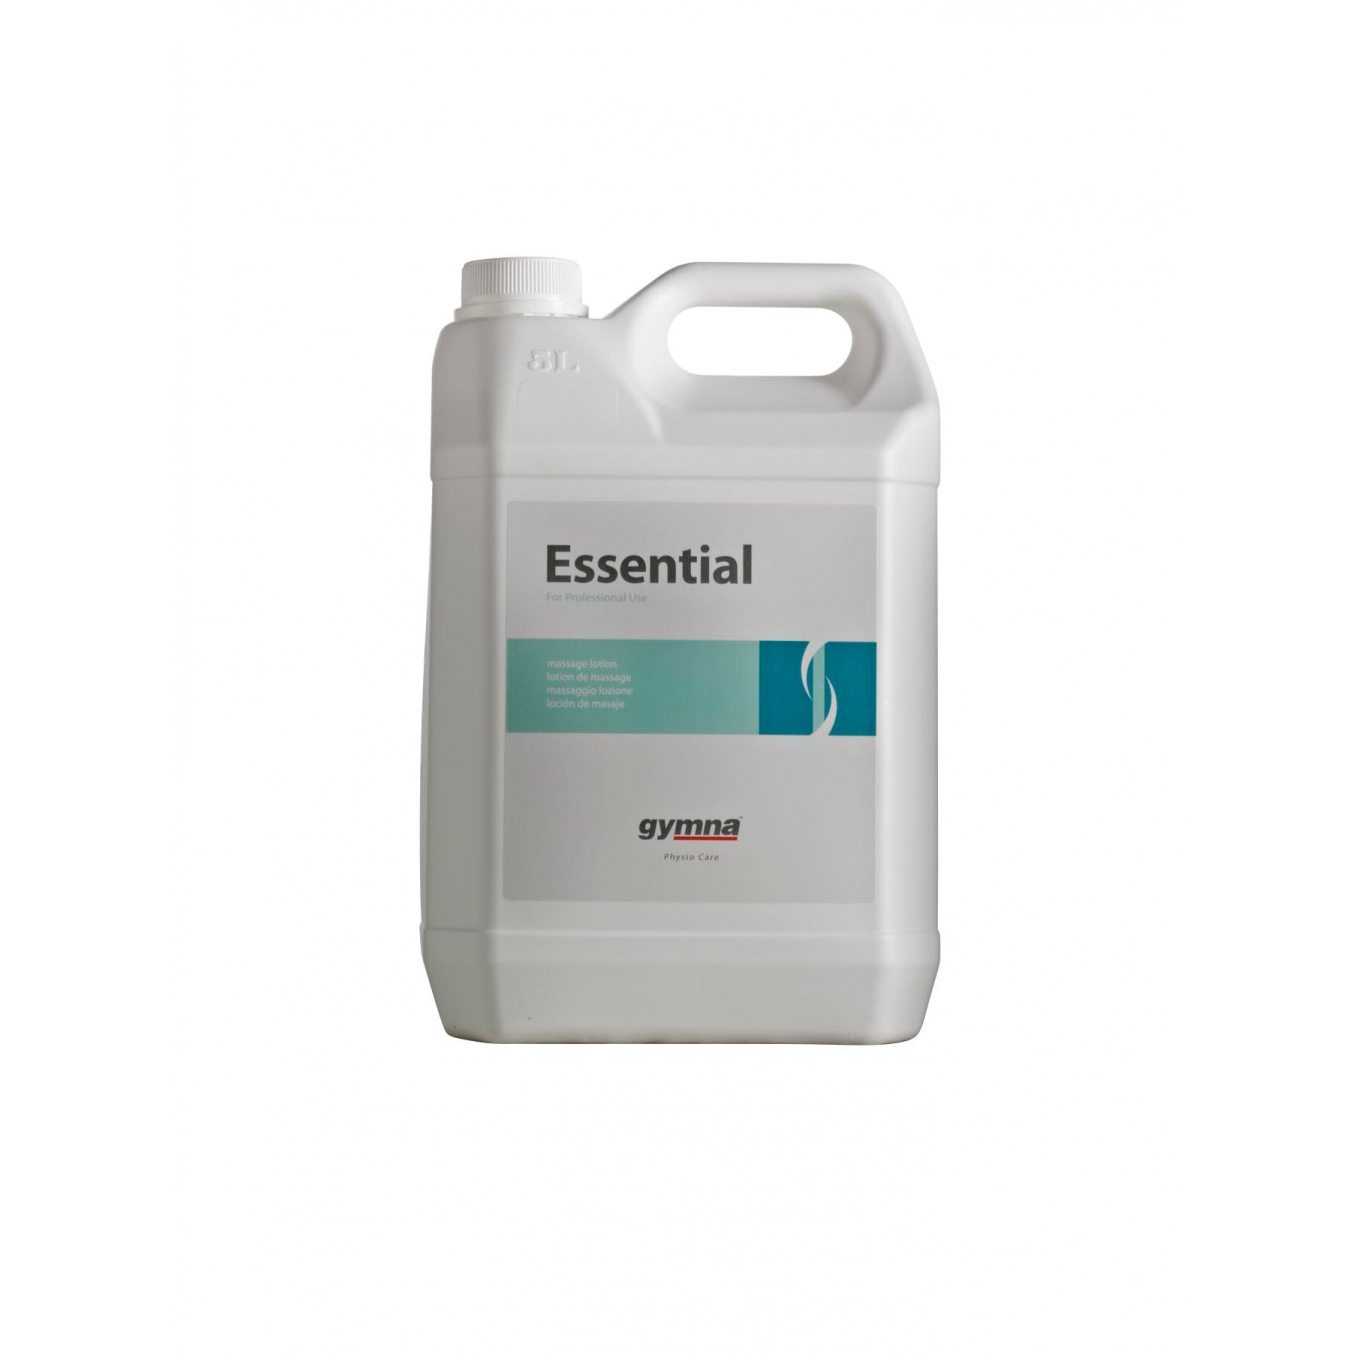 Physio Care Essential massagelotion - 5 l